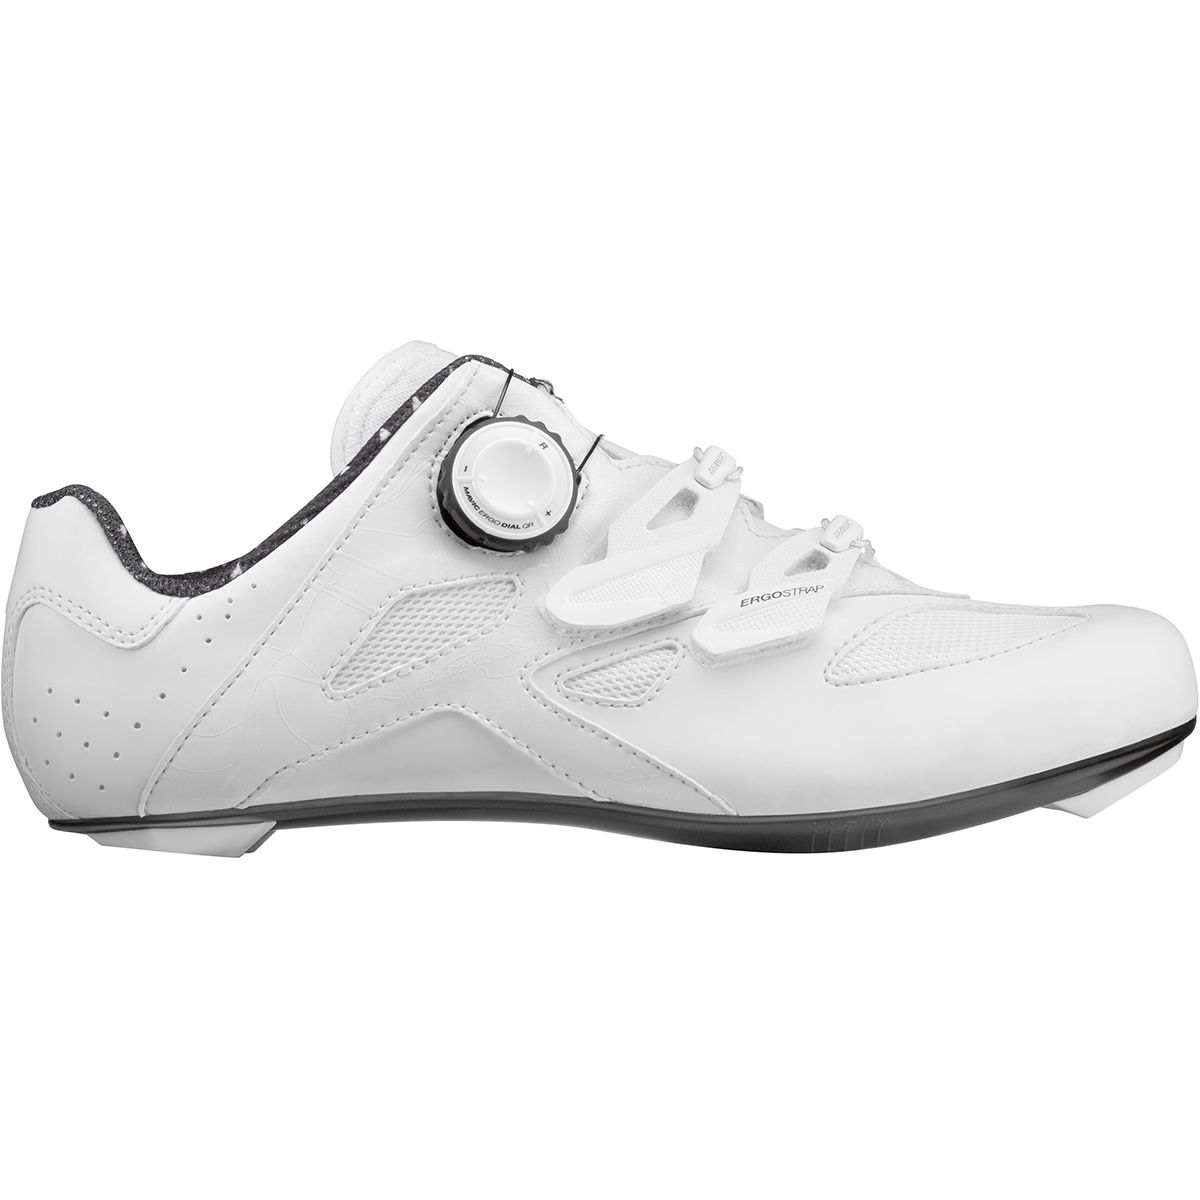 Sequence Elite women's road shoes